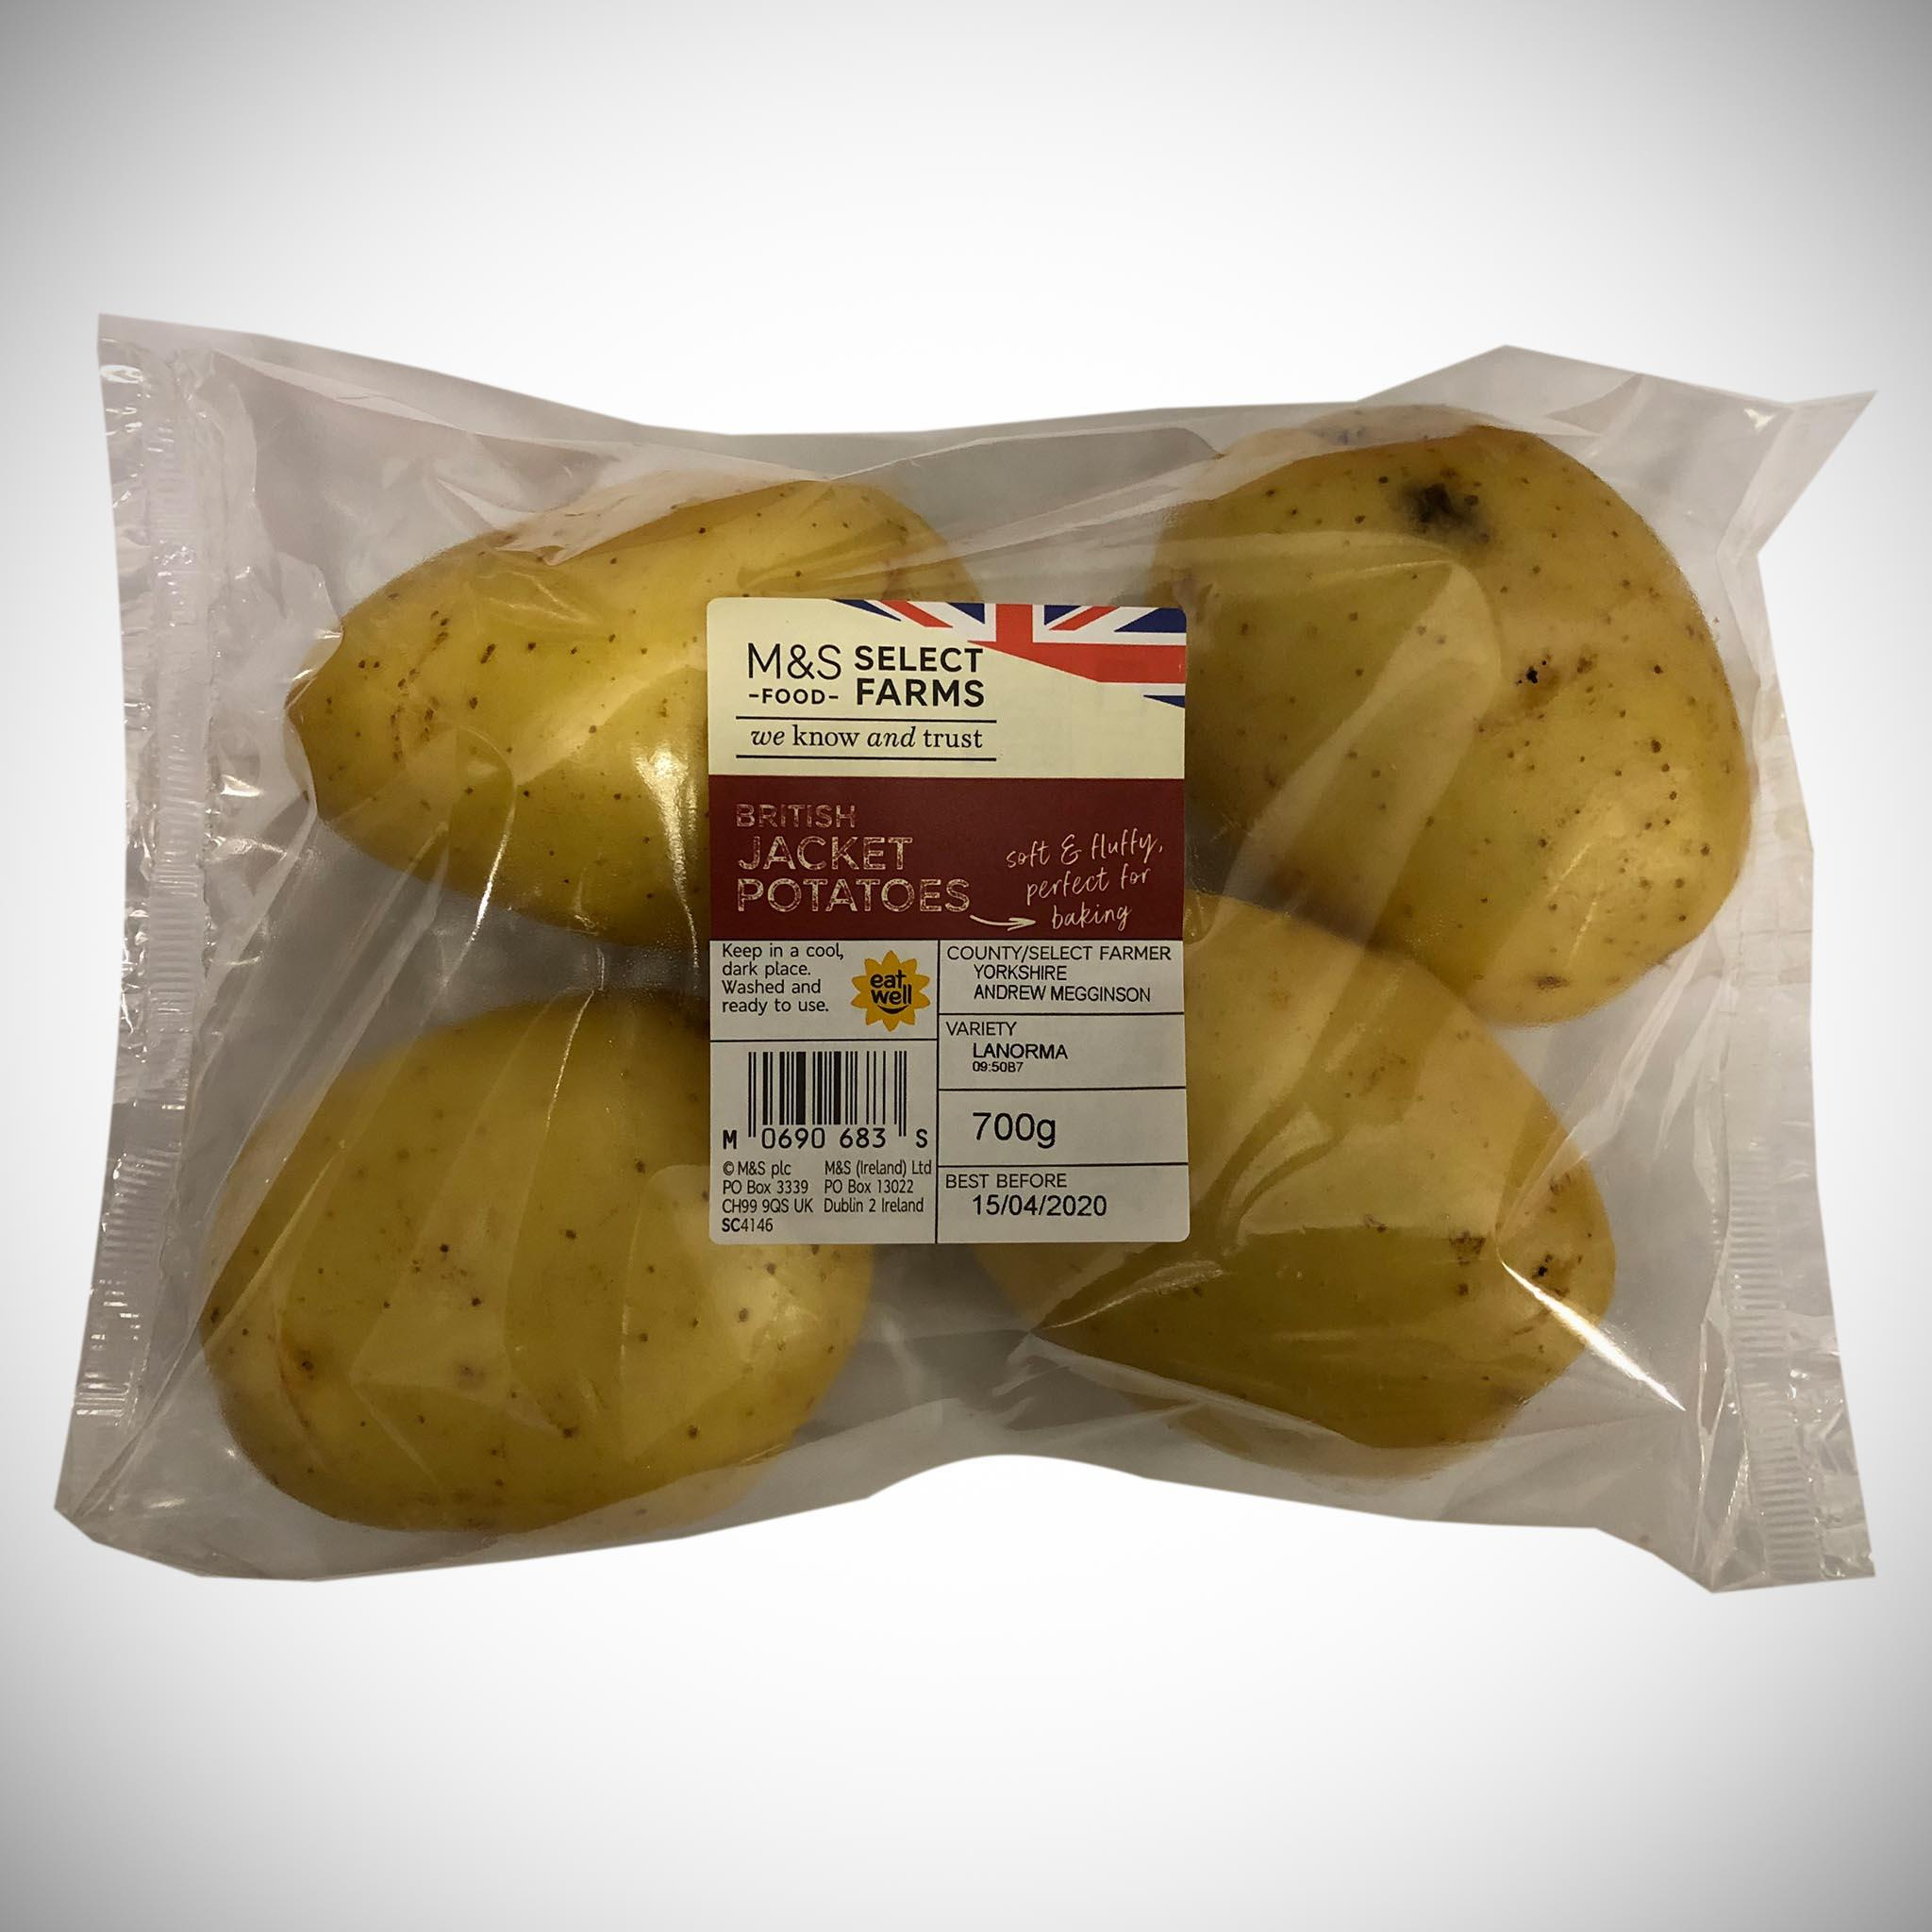 4 Jacket Potatoes 700g